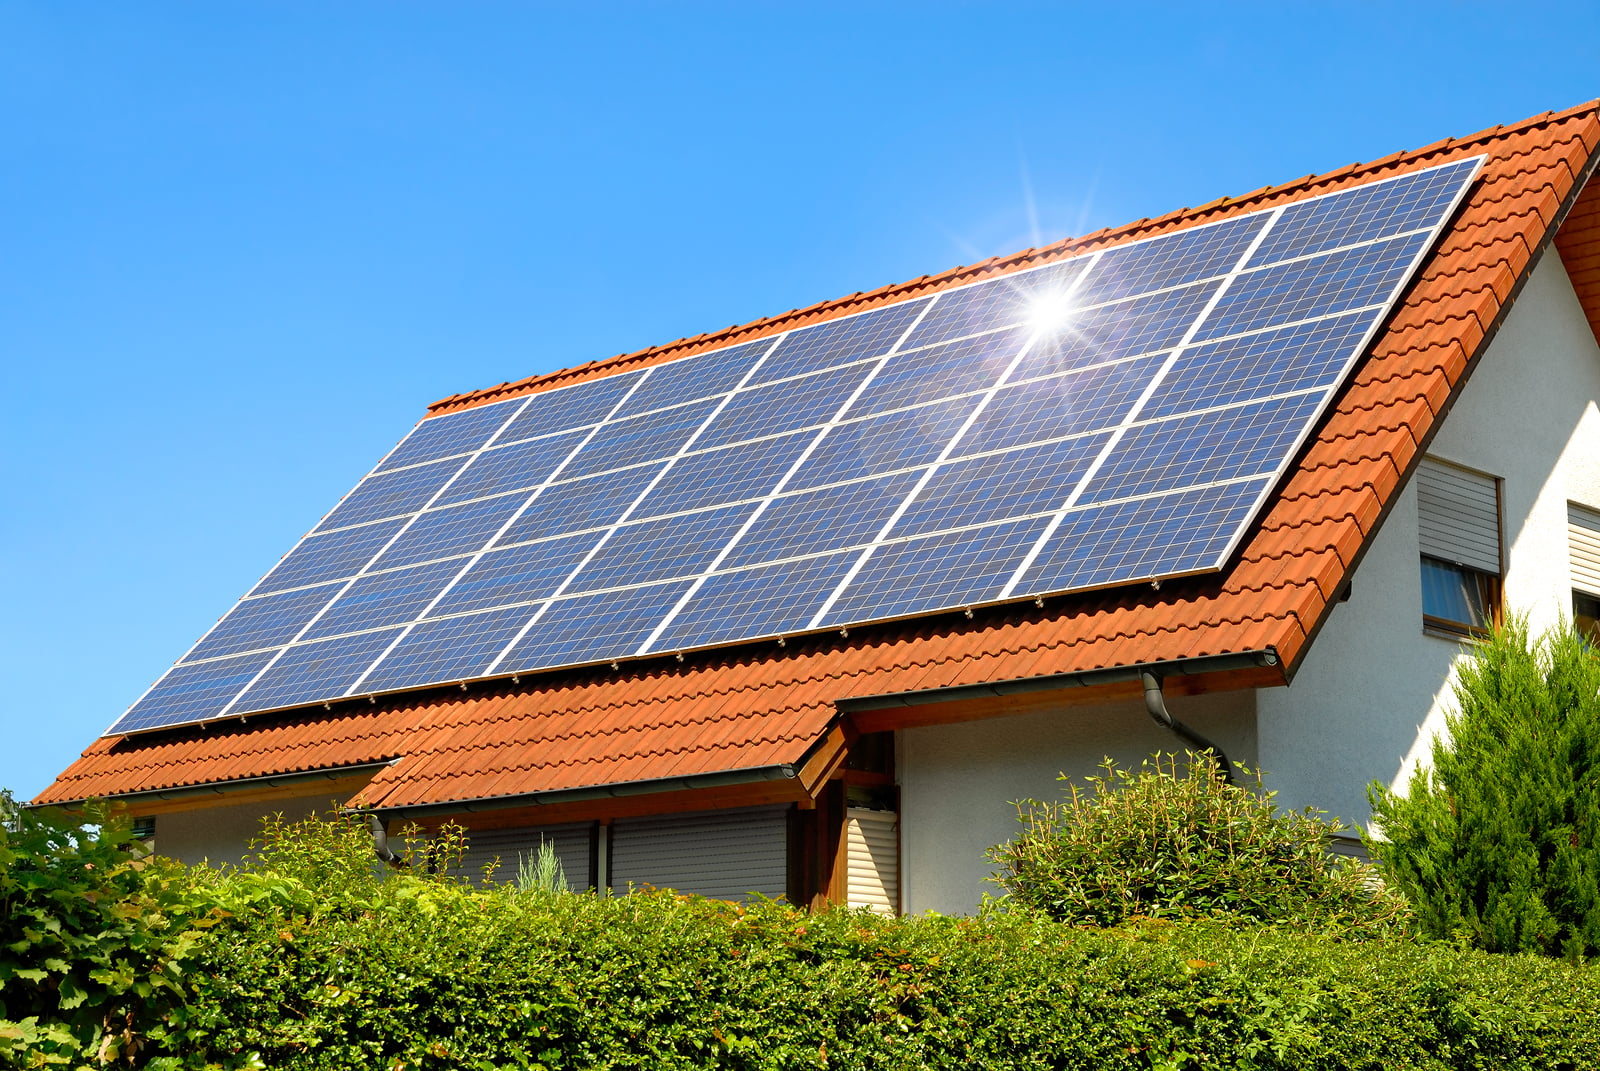 Israeli Venture Helps People Go Green And Get Green By Going Solar via BigStock